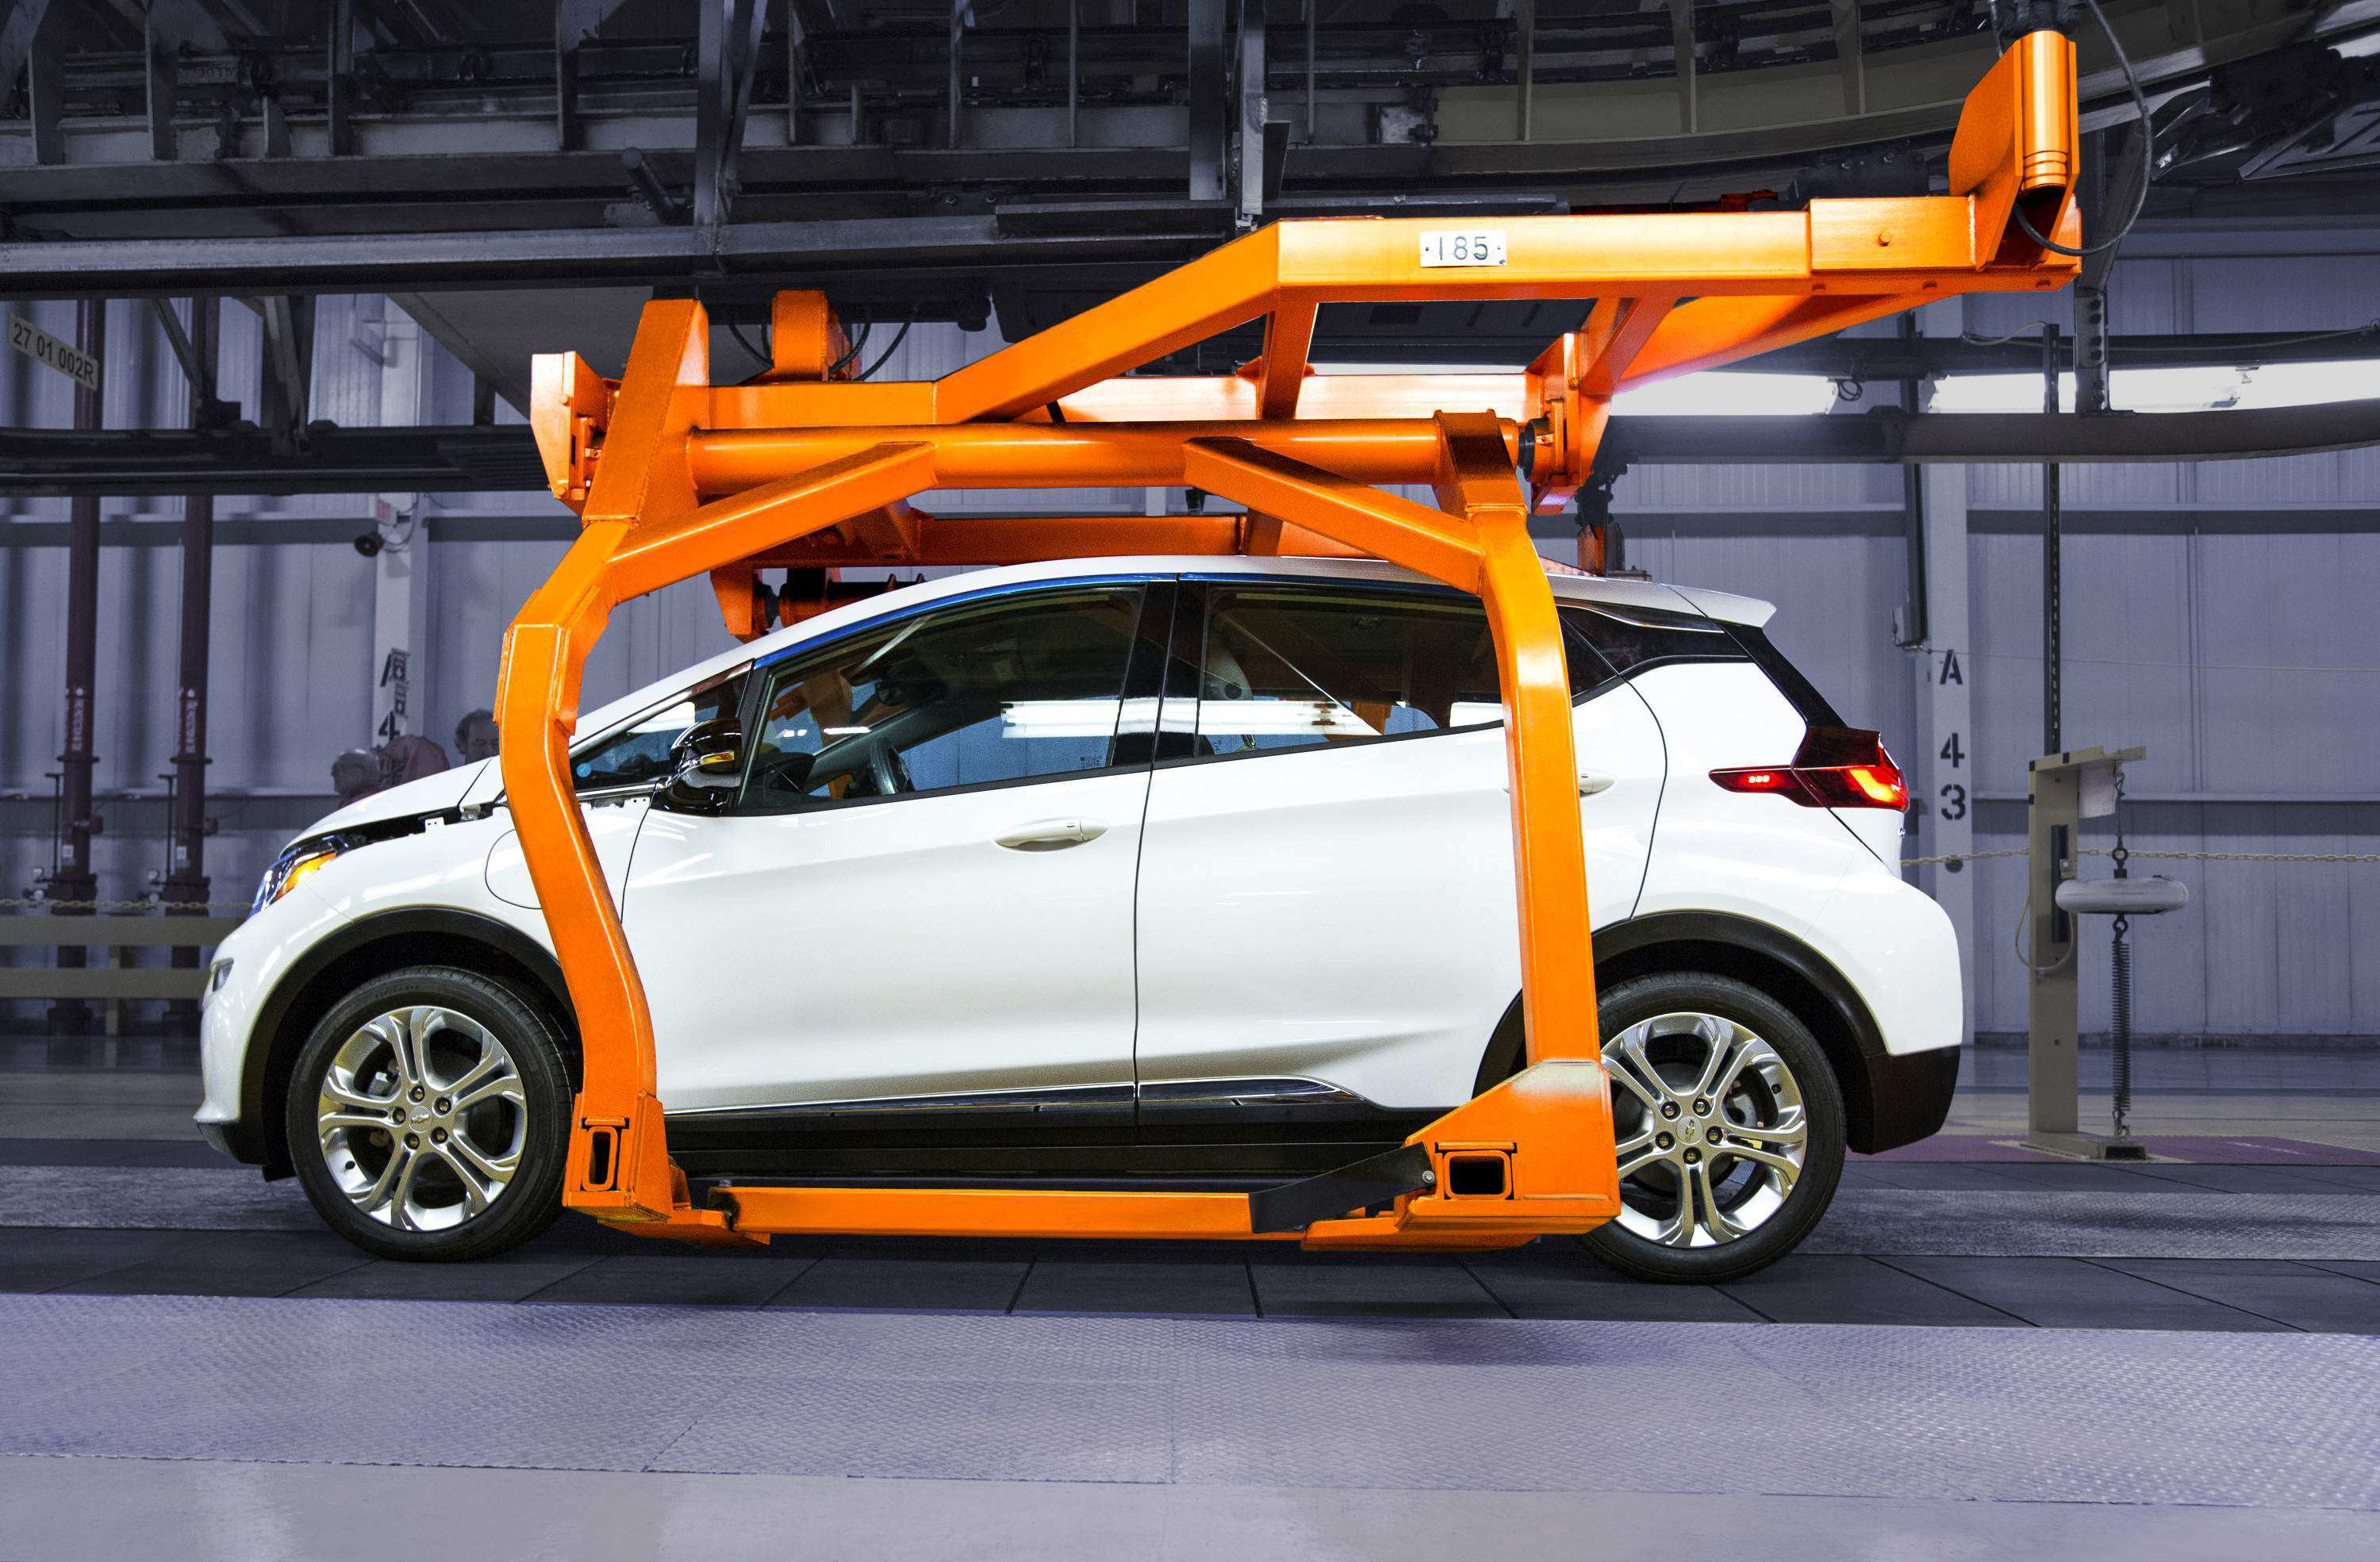 42 Concept of 2020 Chevrolet Bolt Ev Performance and New Engine with 2020 Chevrolet Bolt Ev